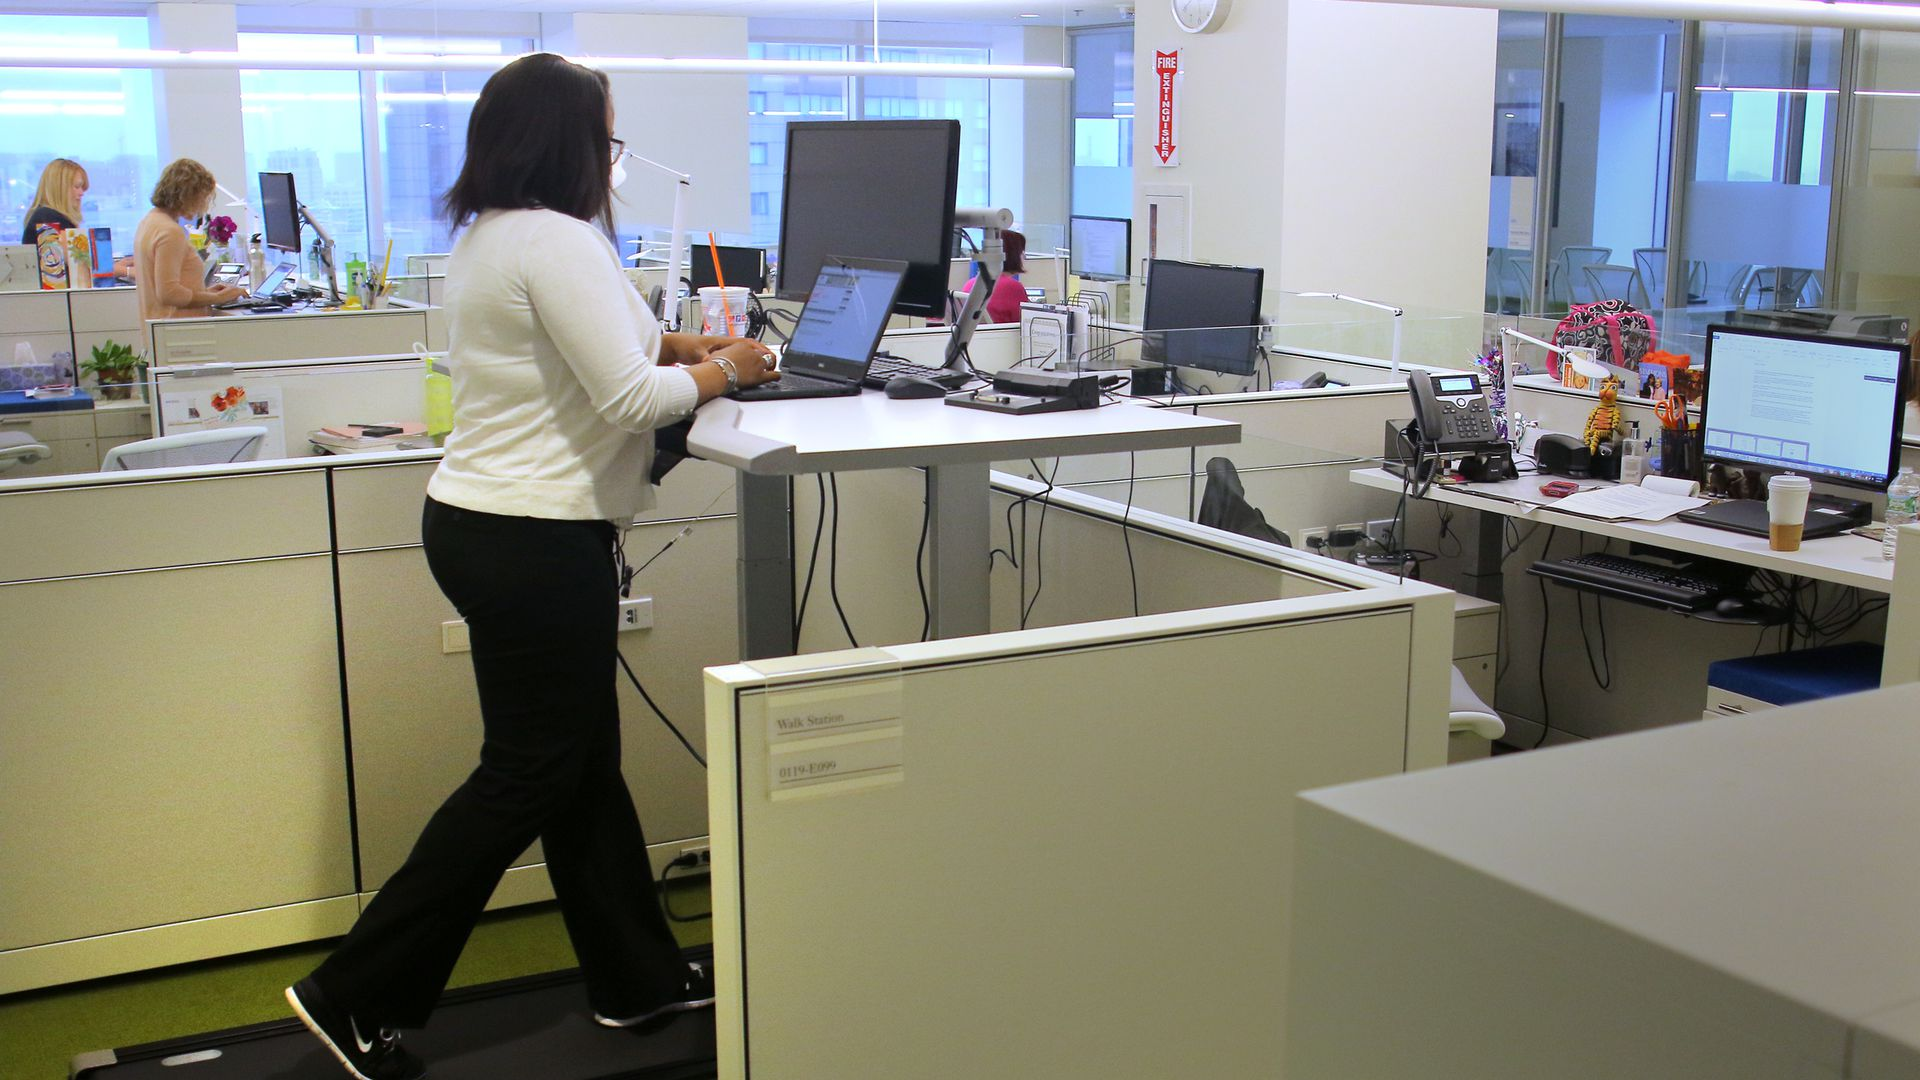 A woman on a treadmill at work.